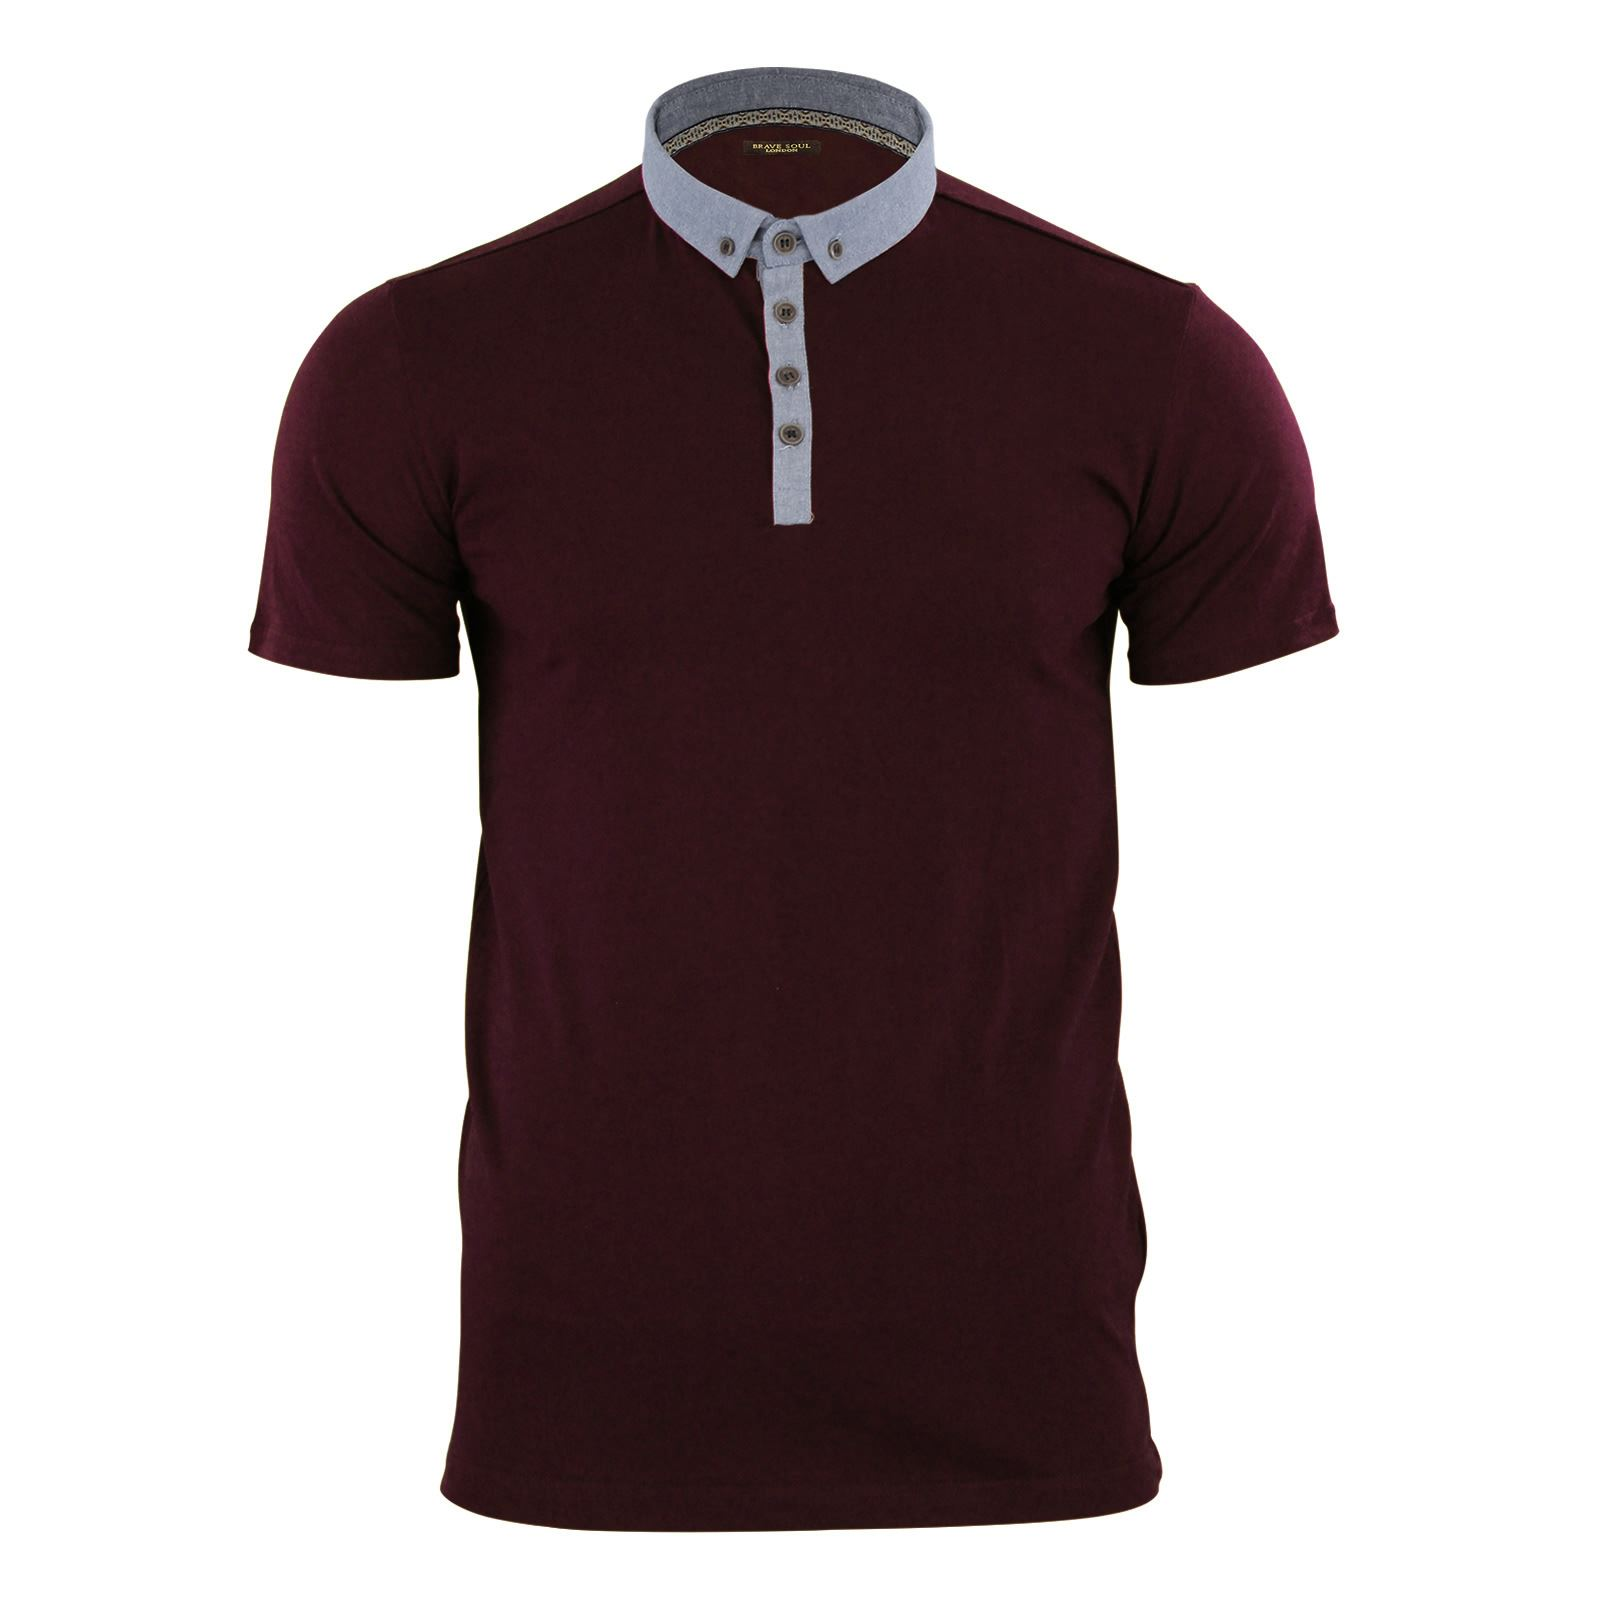 Mens-Polo-T-Shirt-Brave-Soul-Glover-Cotton-Collared-Short-Sleeve-Casual-Top thumbnail 24